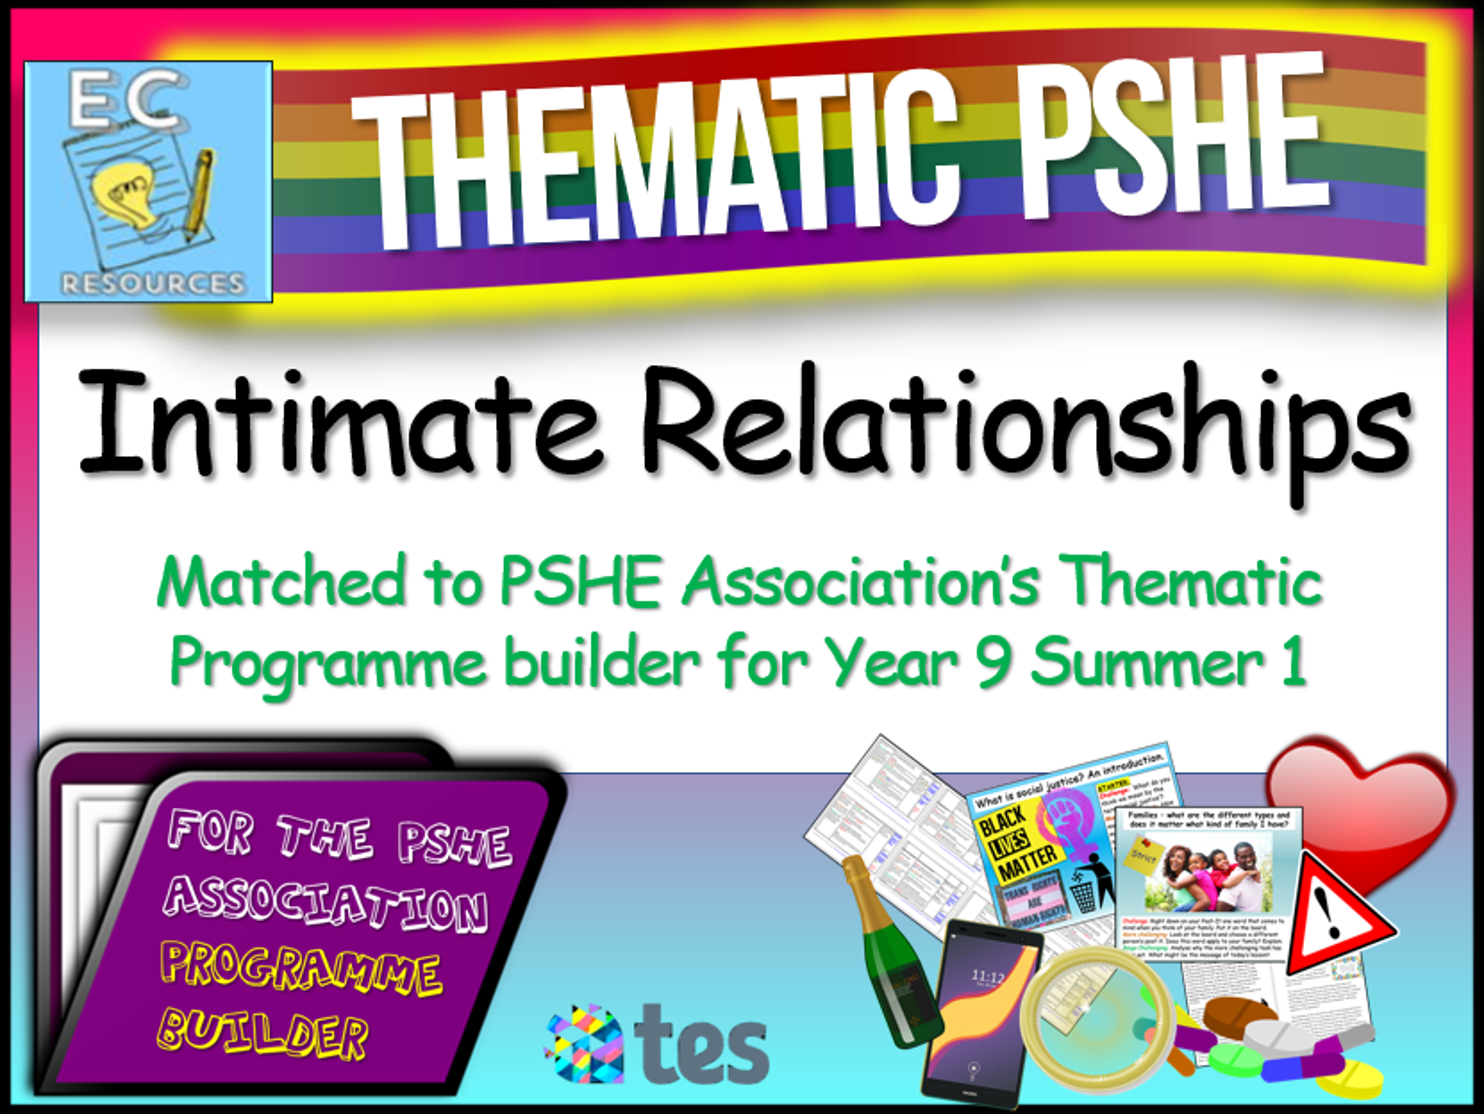 Intimate Relationships Thematic PSHE